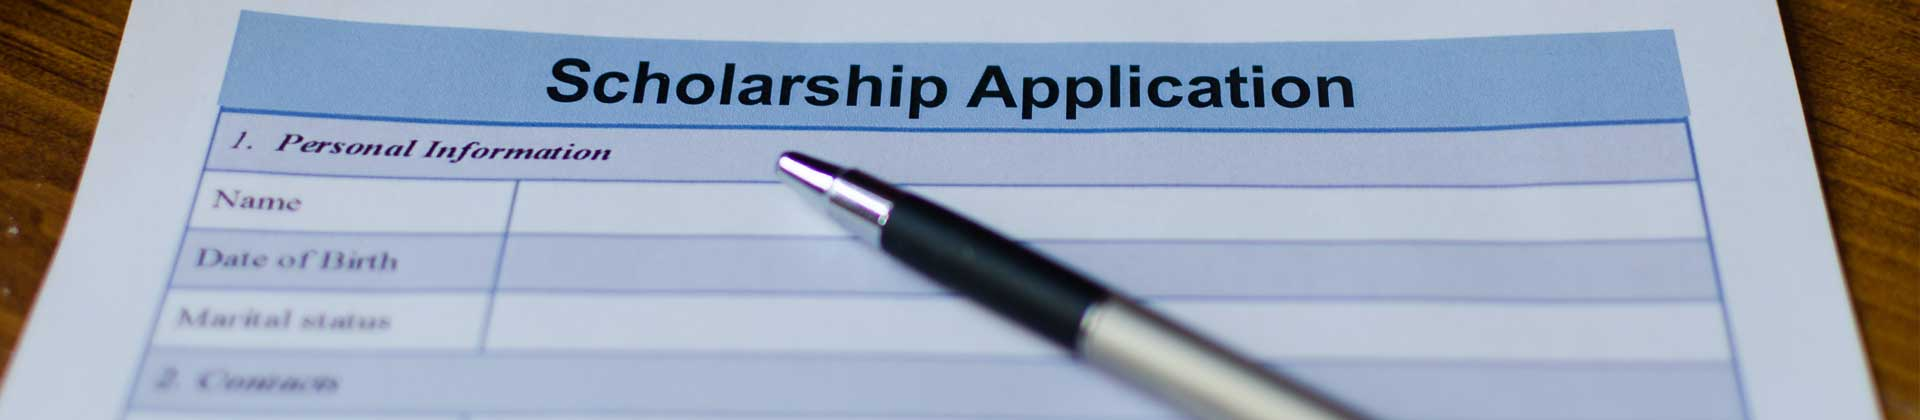 .Scholarship application form